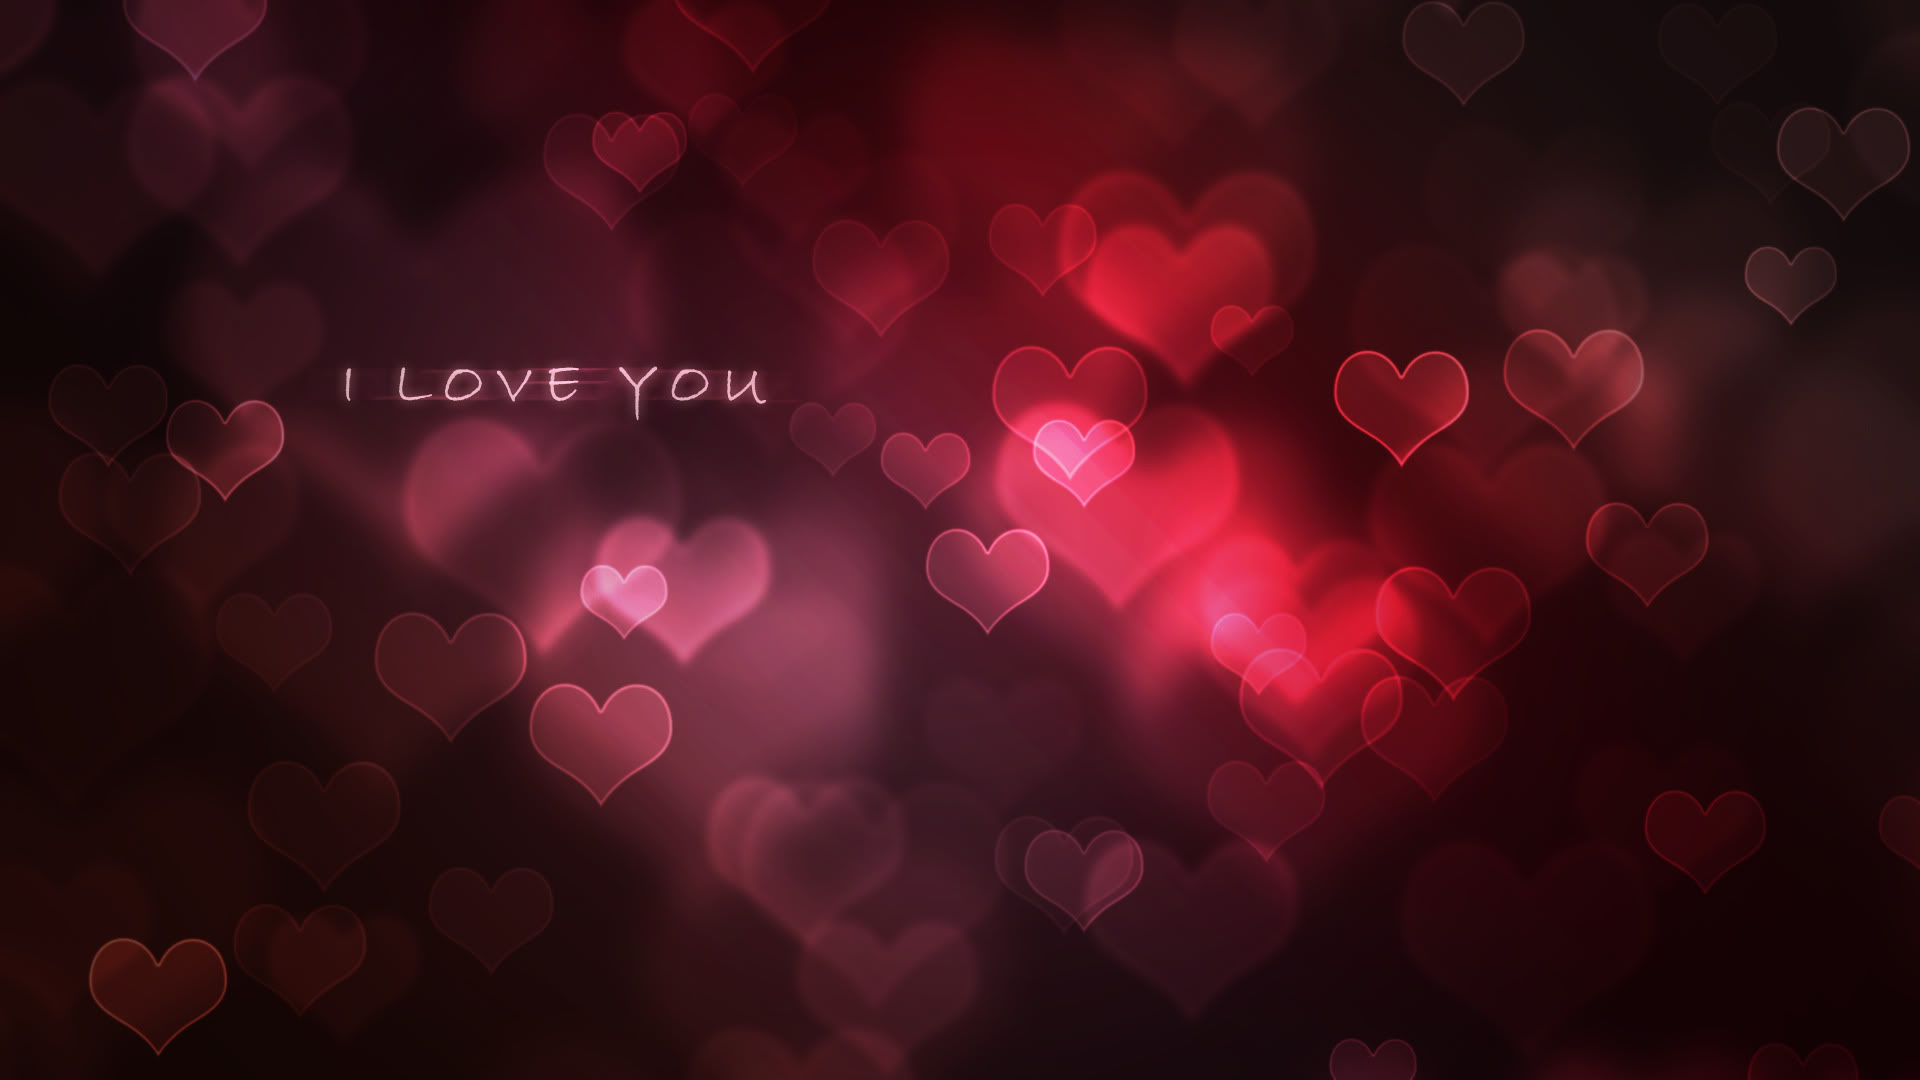 Love Wallpaper Backgrounds (2)